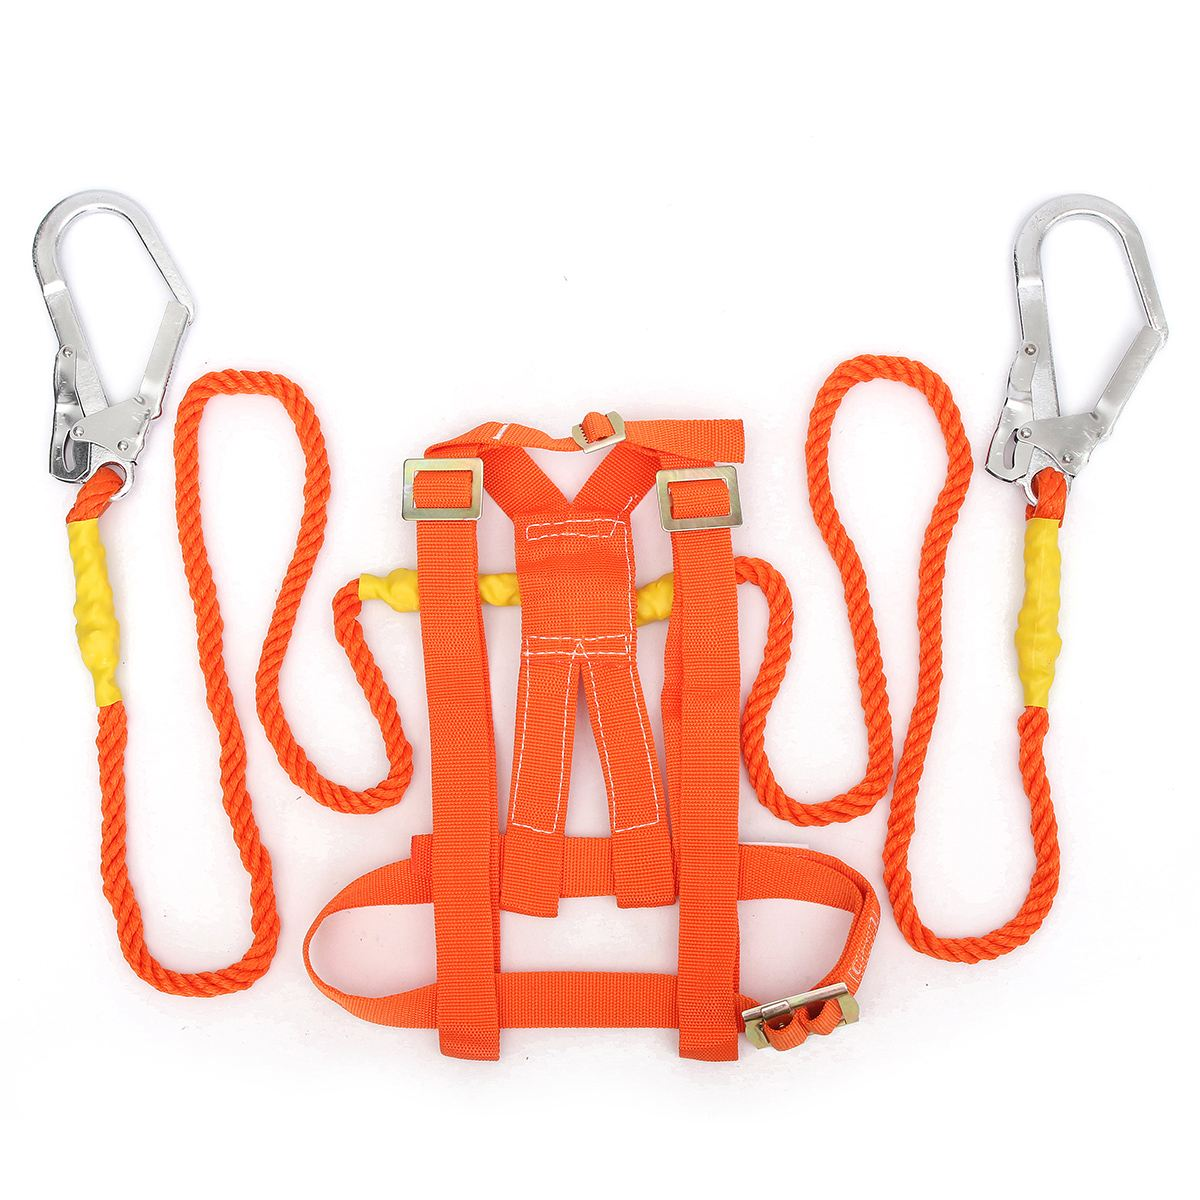 NEW Outdoor Climbing Climb Mountain Rope Safety Waist Belt Protection Equipment Workplace Safety Harness 25kn professional carabiner d shape safety master lock outdoor rock climbing buckle equipment